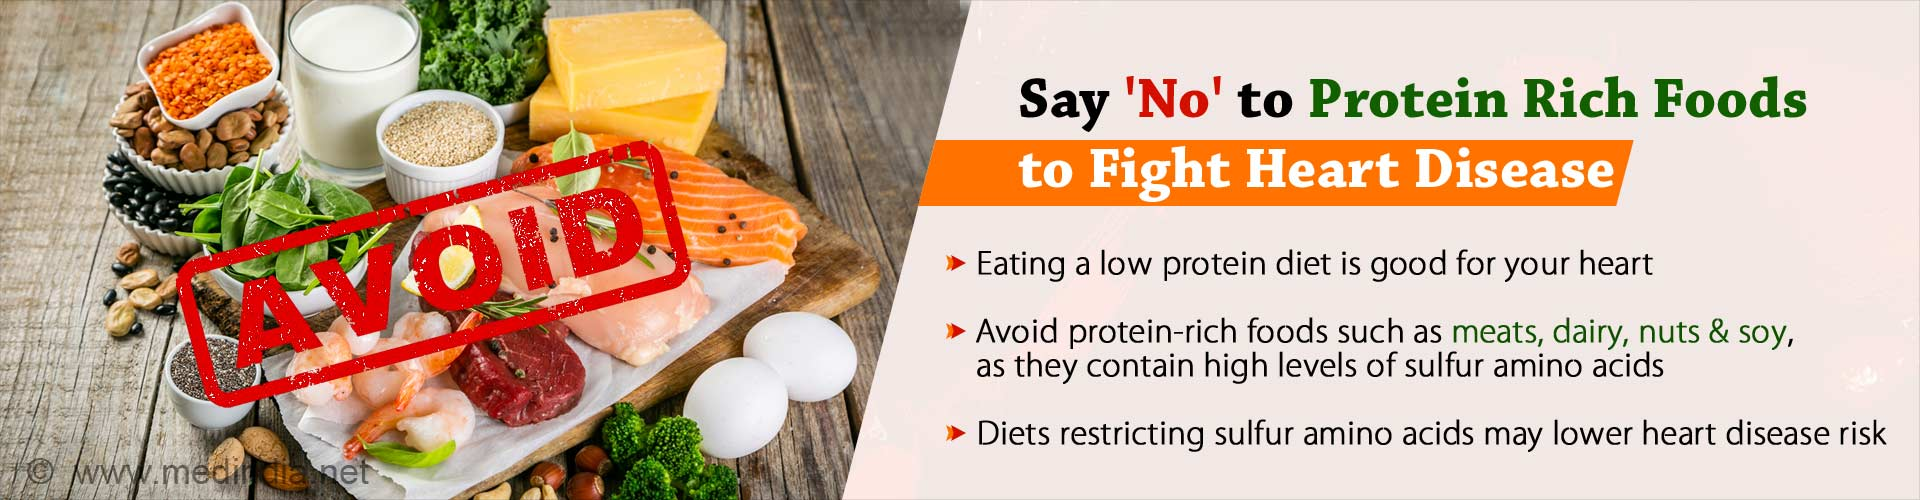 Low-protein Diet may Cut Down Heart Disease Risk